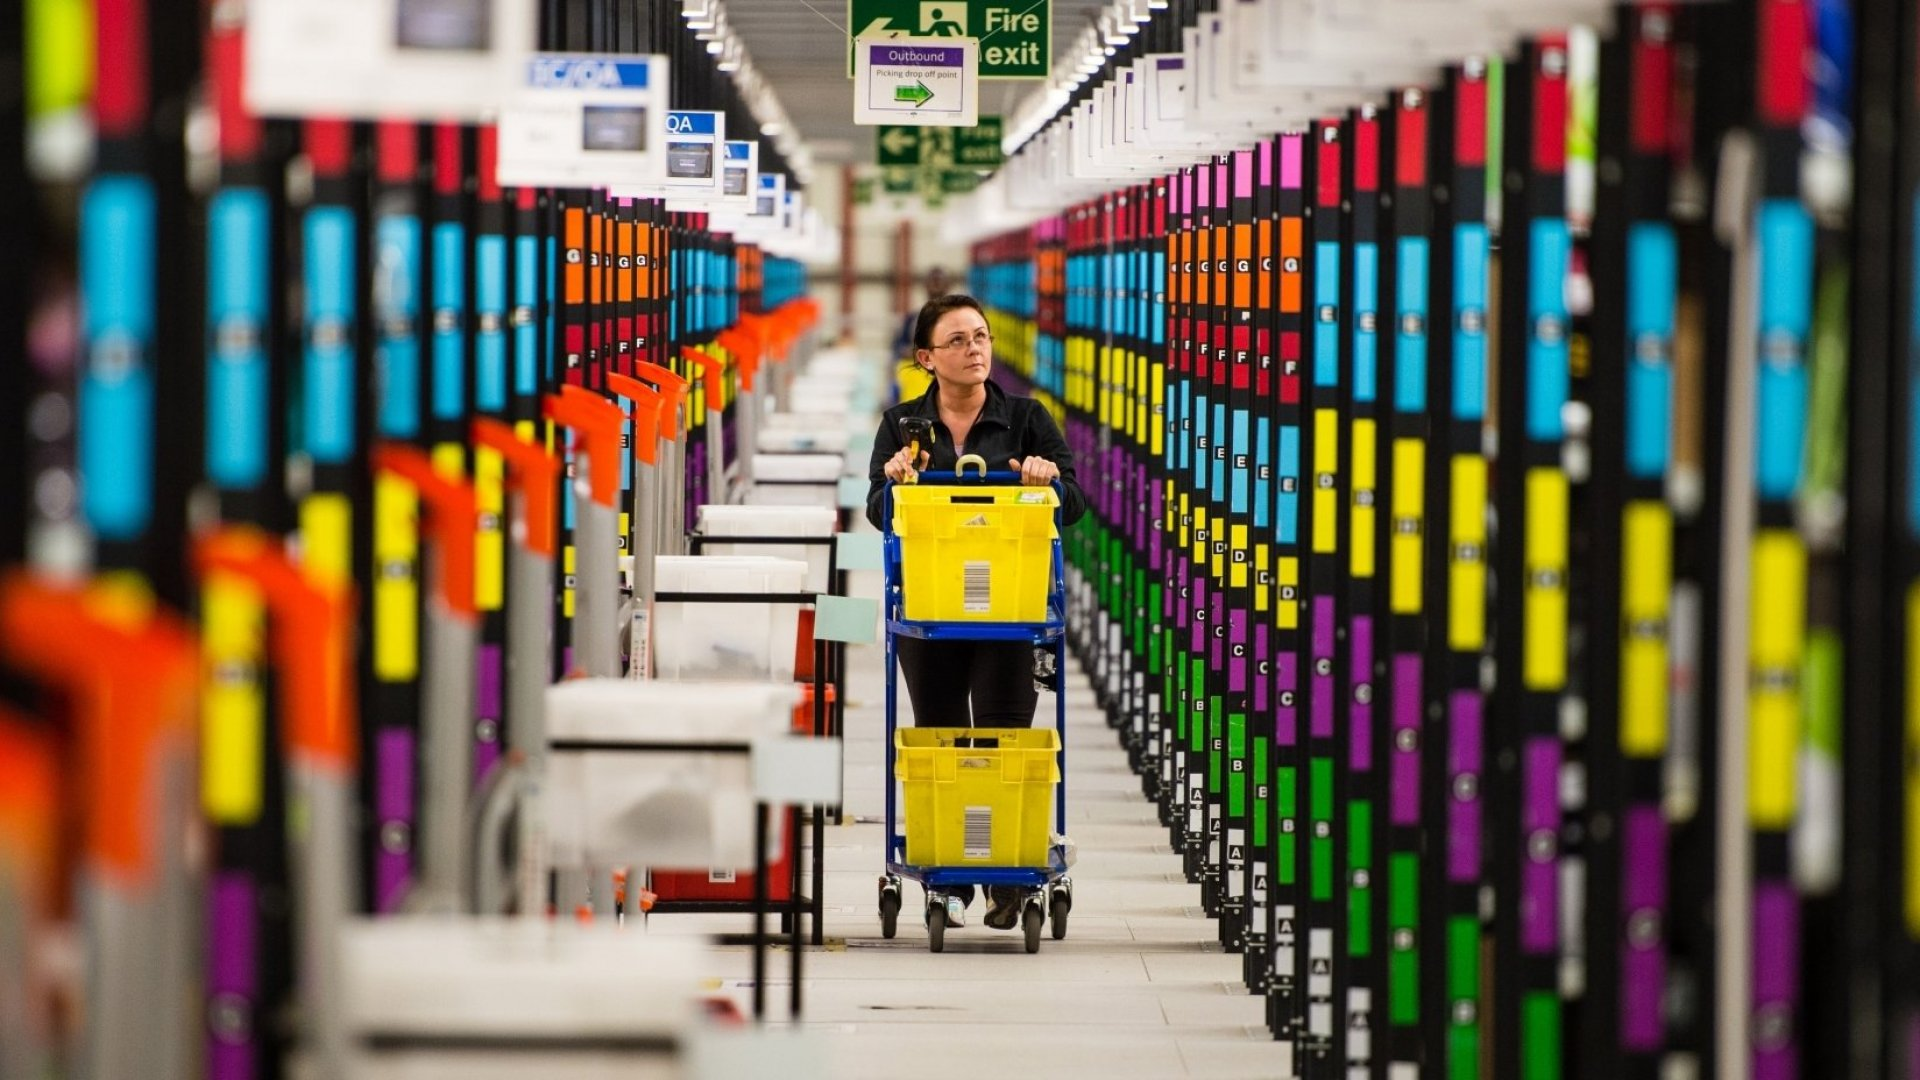 Why It's Way Too Easy to Sell Counterfeit Goods on Amazon